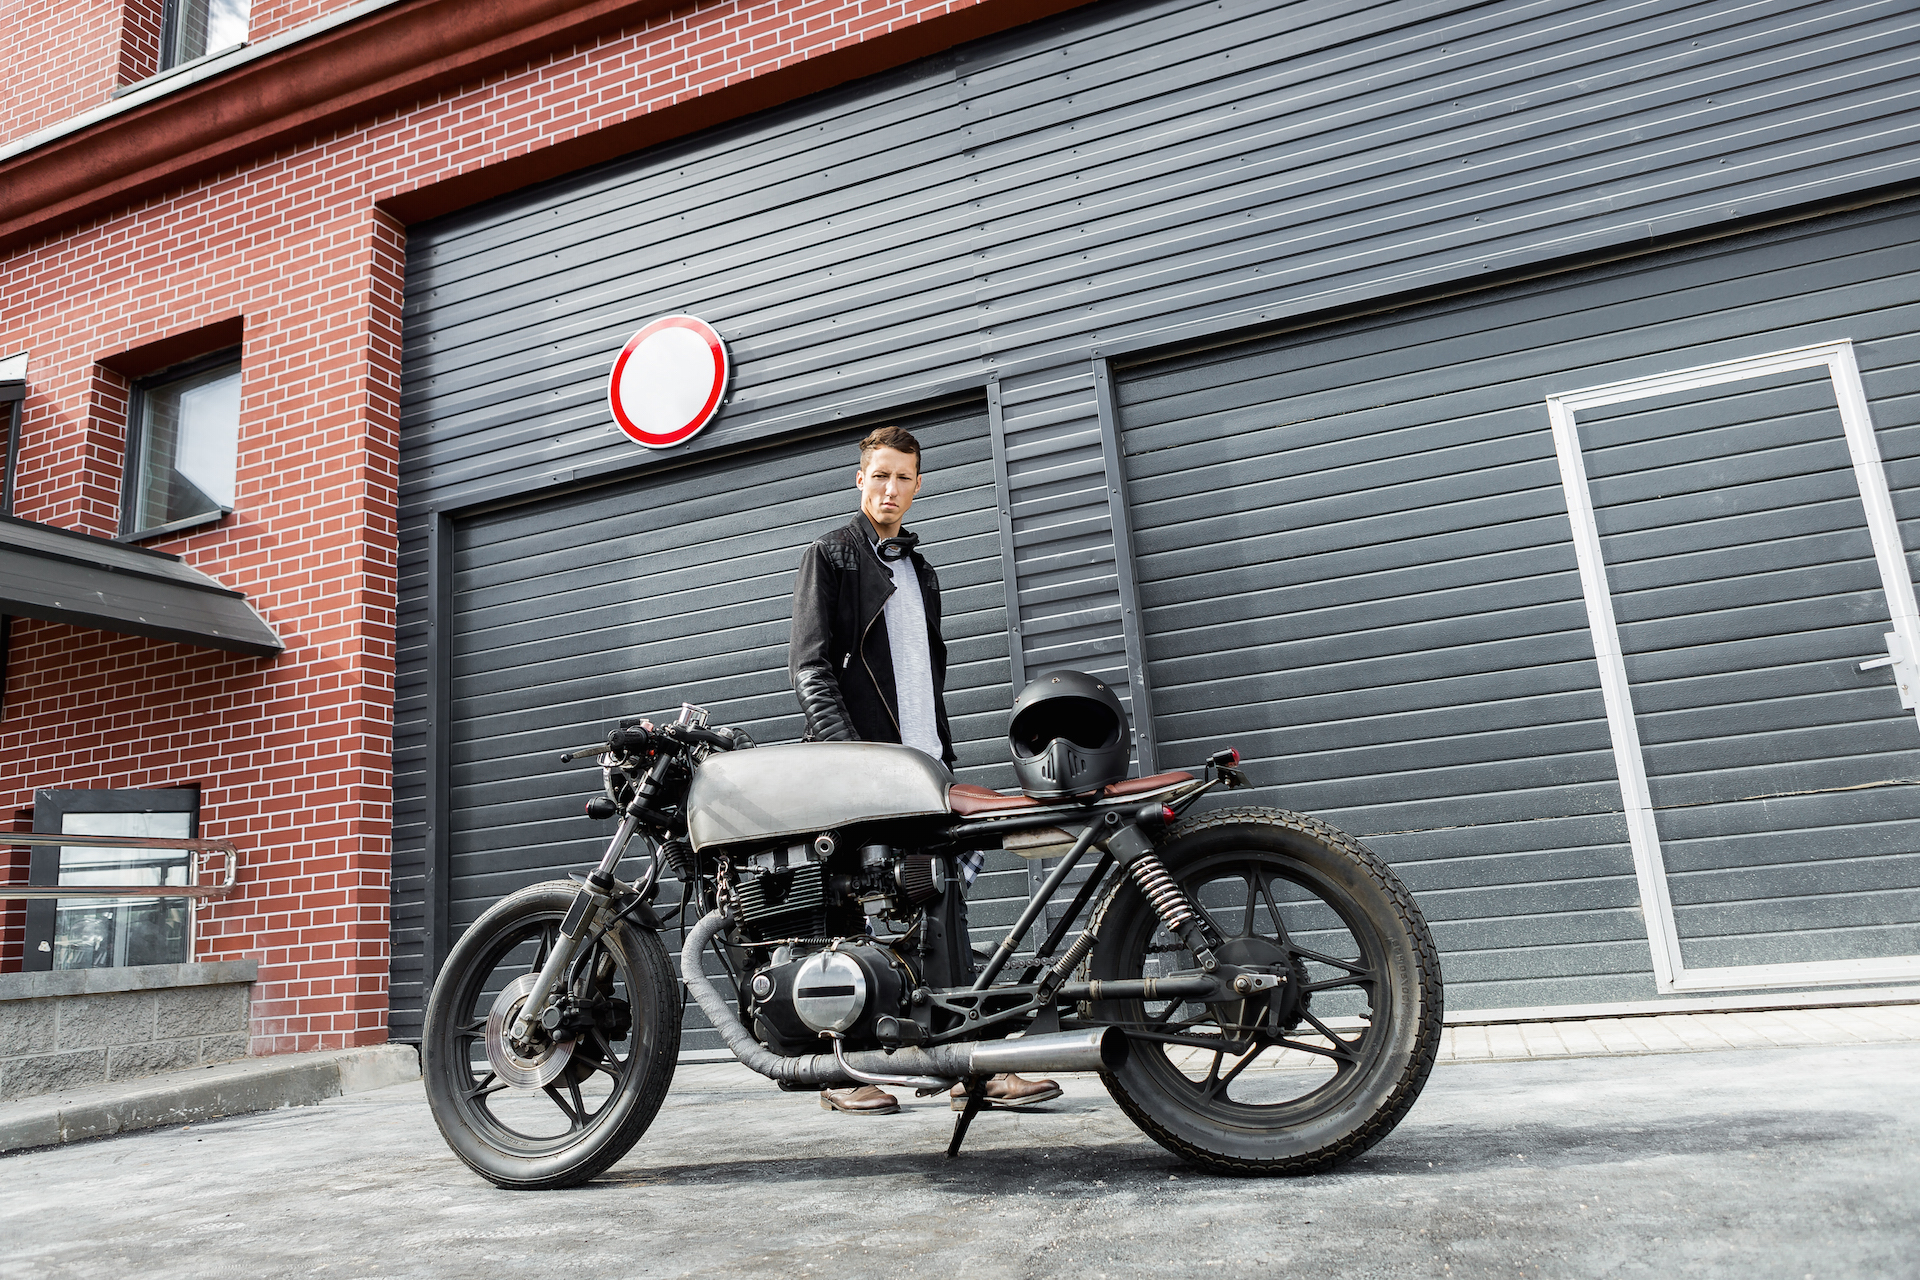 Handsome rider man in black leather biker jacket look to his classic style cafe racer motorcycle industrial gates as background. Bike custom made in vintage garage. Brutal fun urban lifestyle.